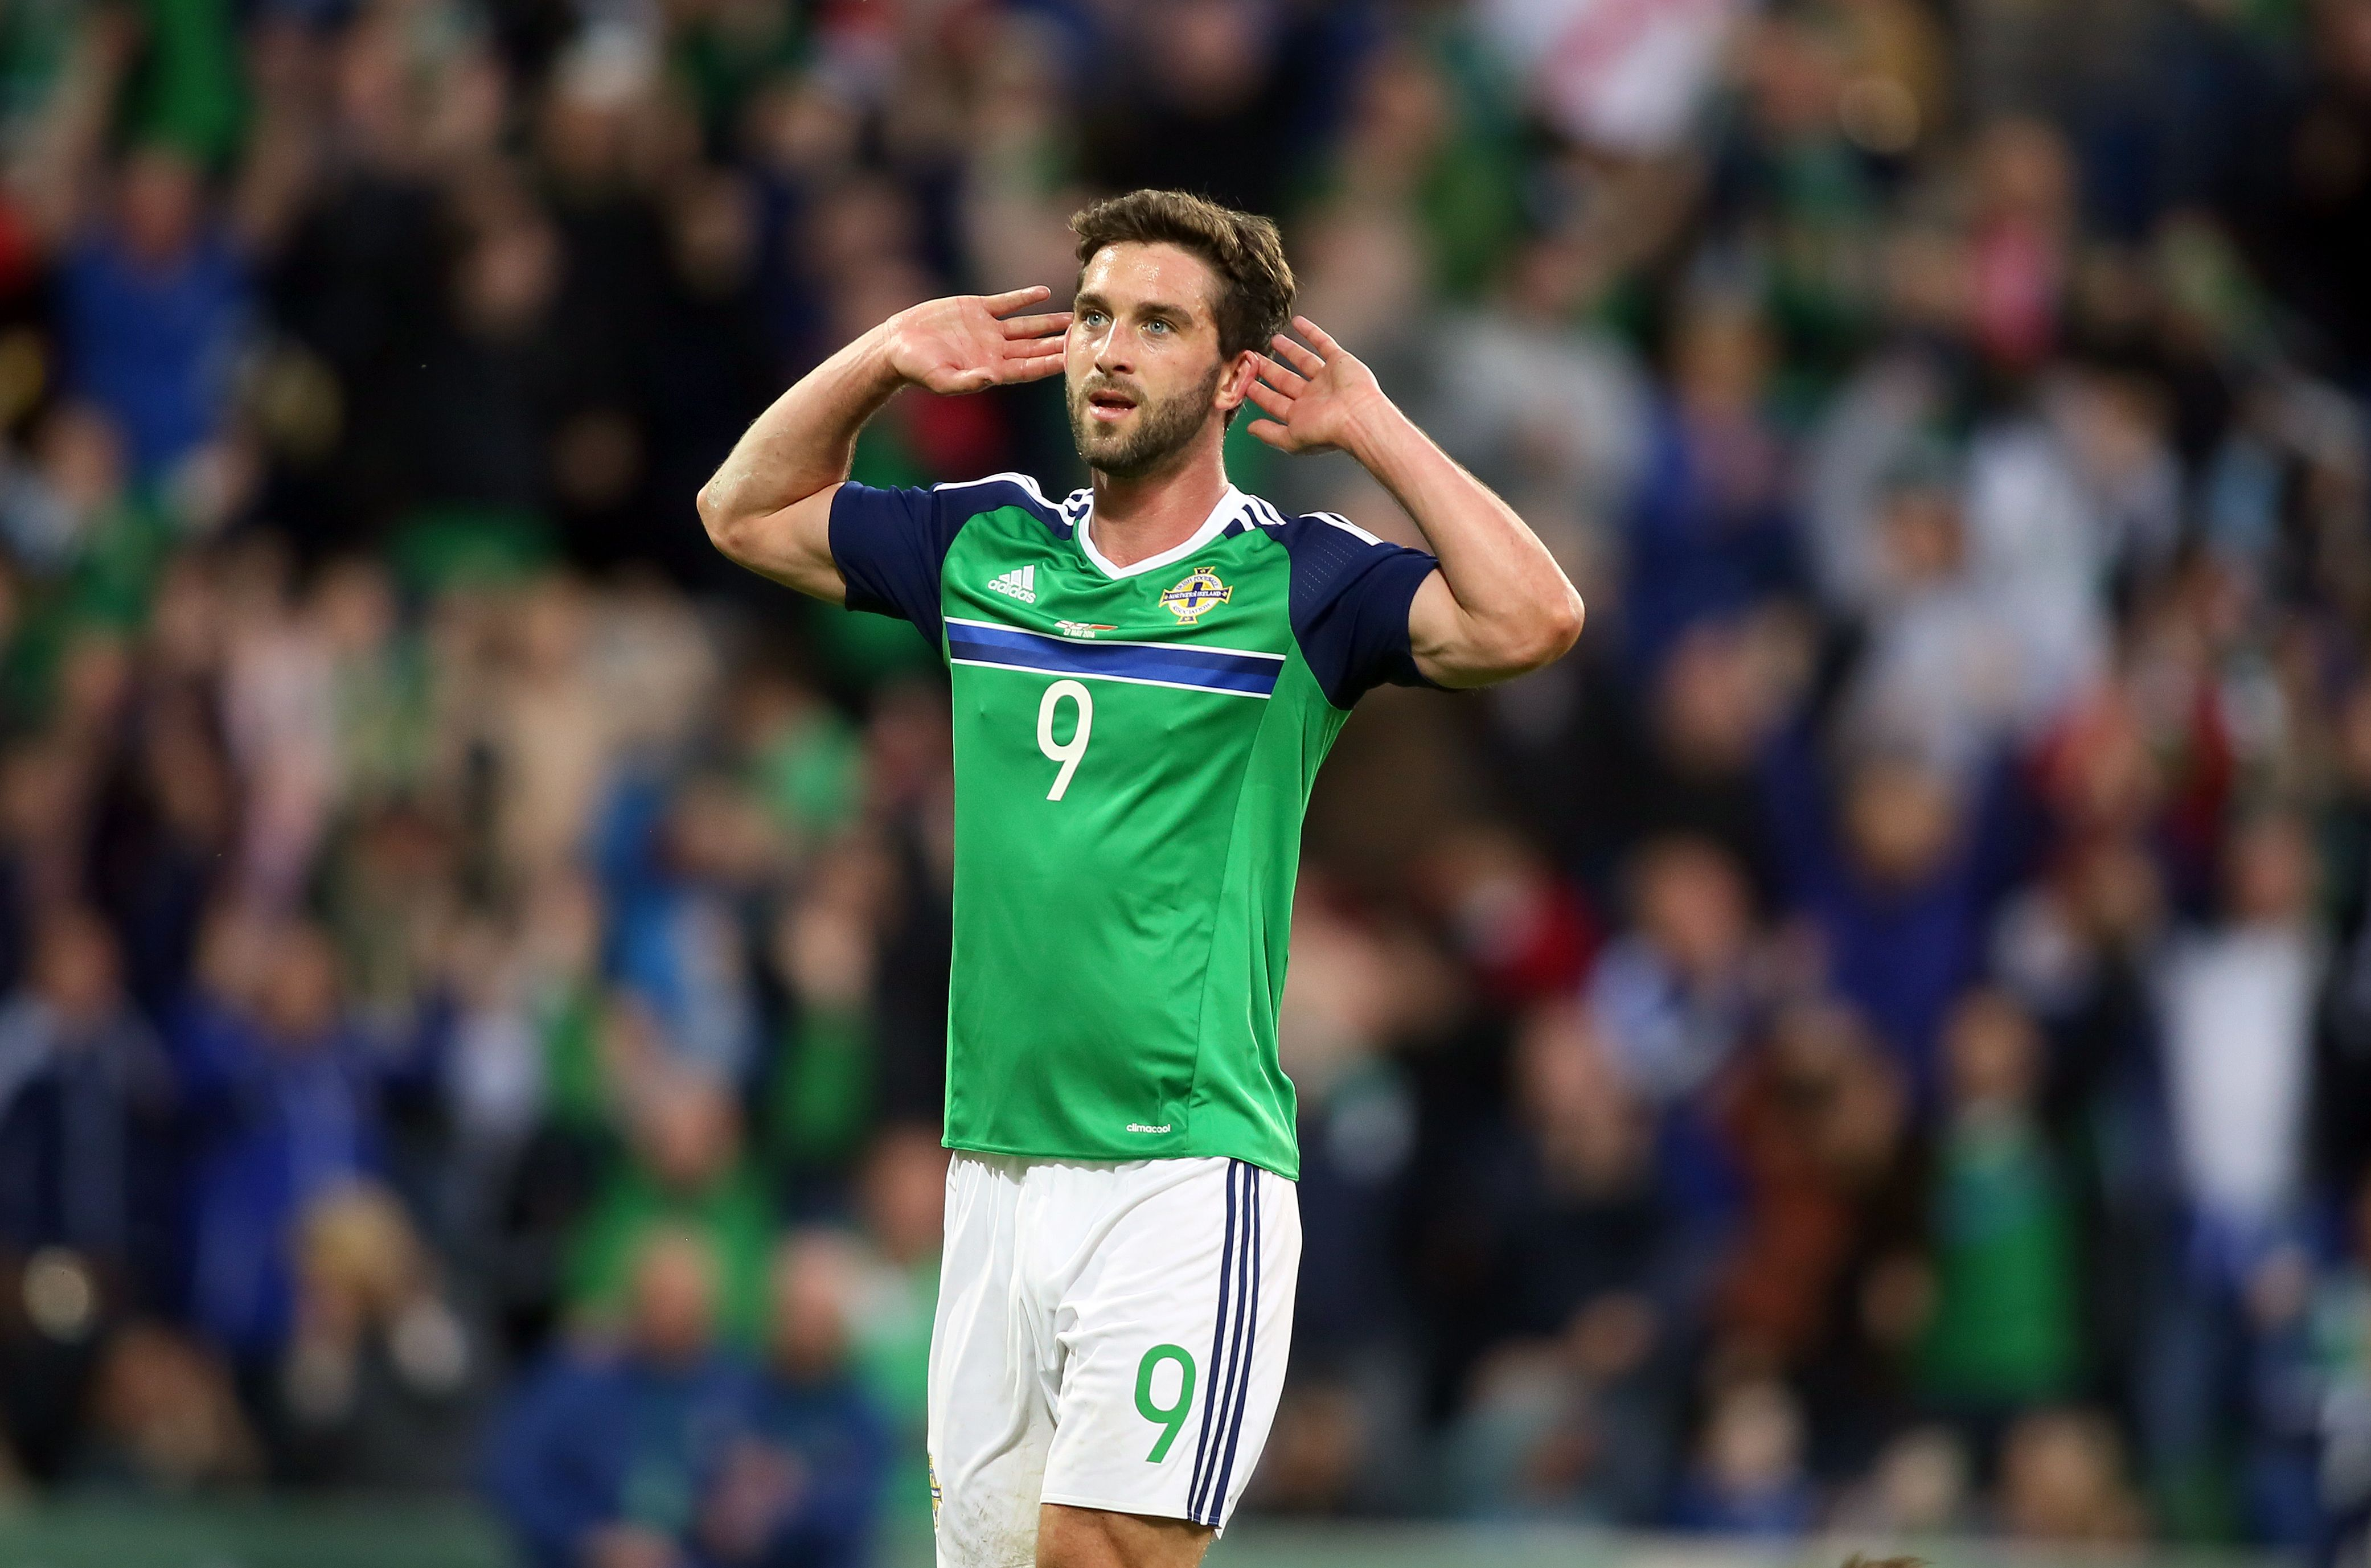 Will Grigg received as many nominations as Paul Pogba for Uefa award